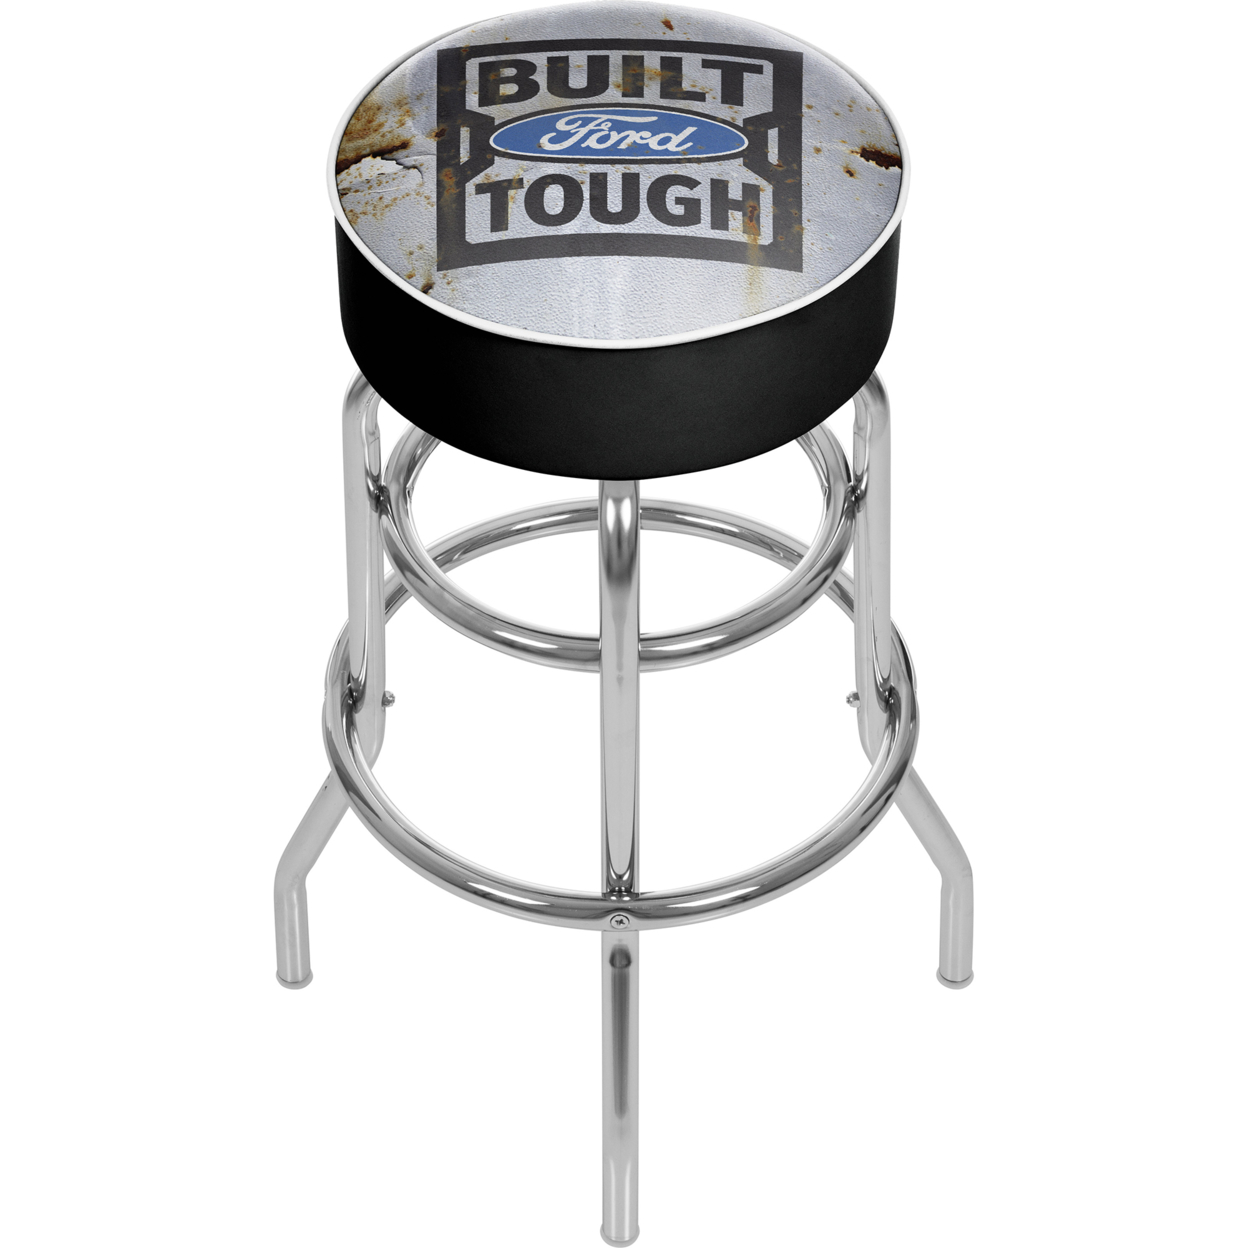 Ford Padded Swivel Bar Stool 30 Inches High - Built Ford Tough